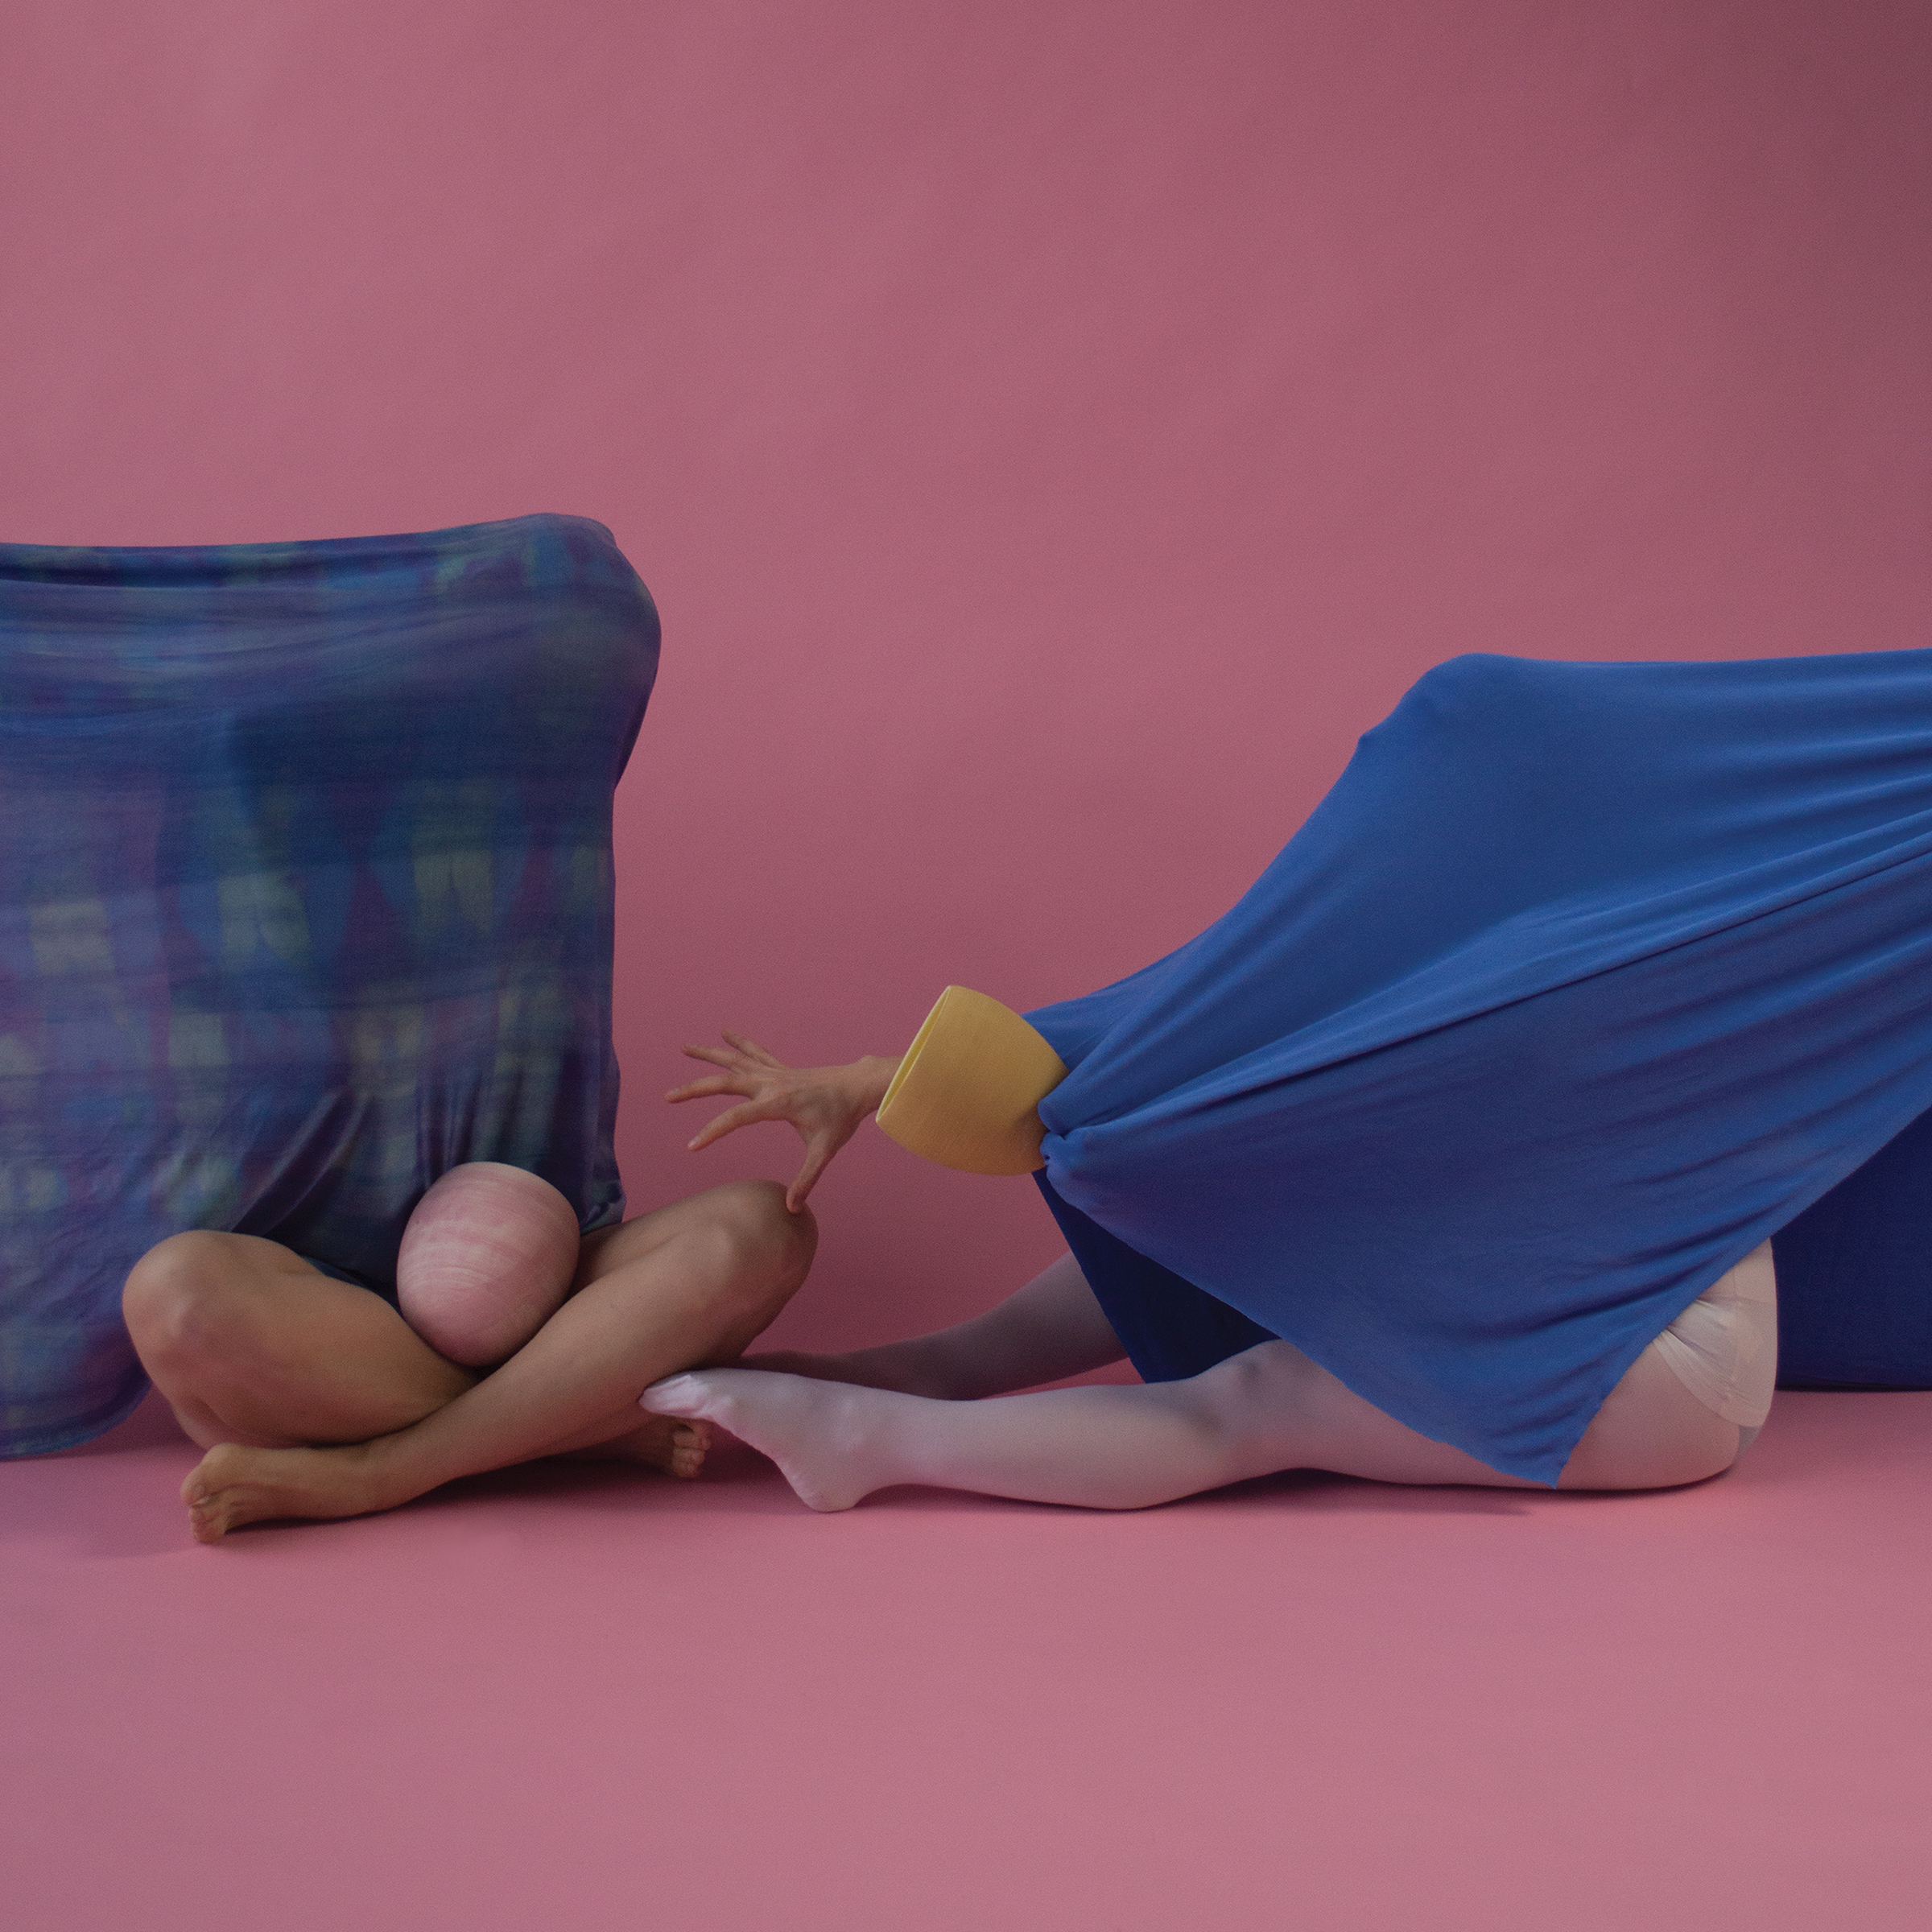 Dianne Lee and Robyn LeRoy-Evans, Vessel Moves, 2019. Courtesy of the artists.